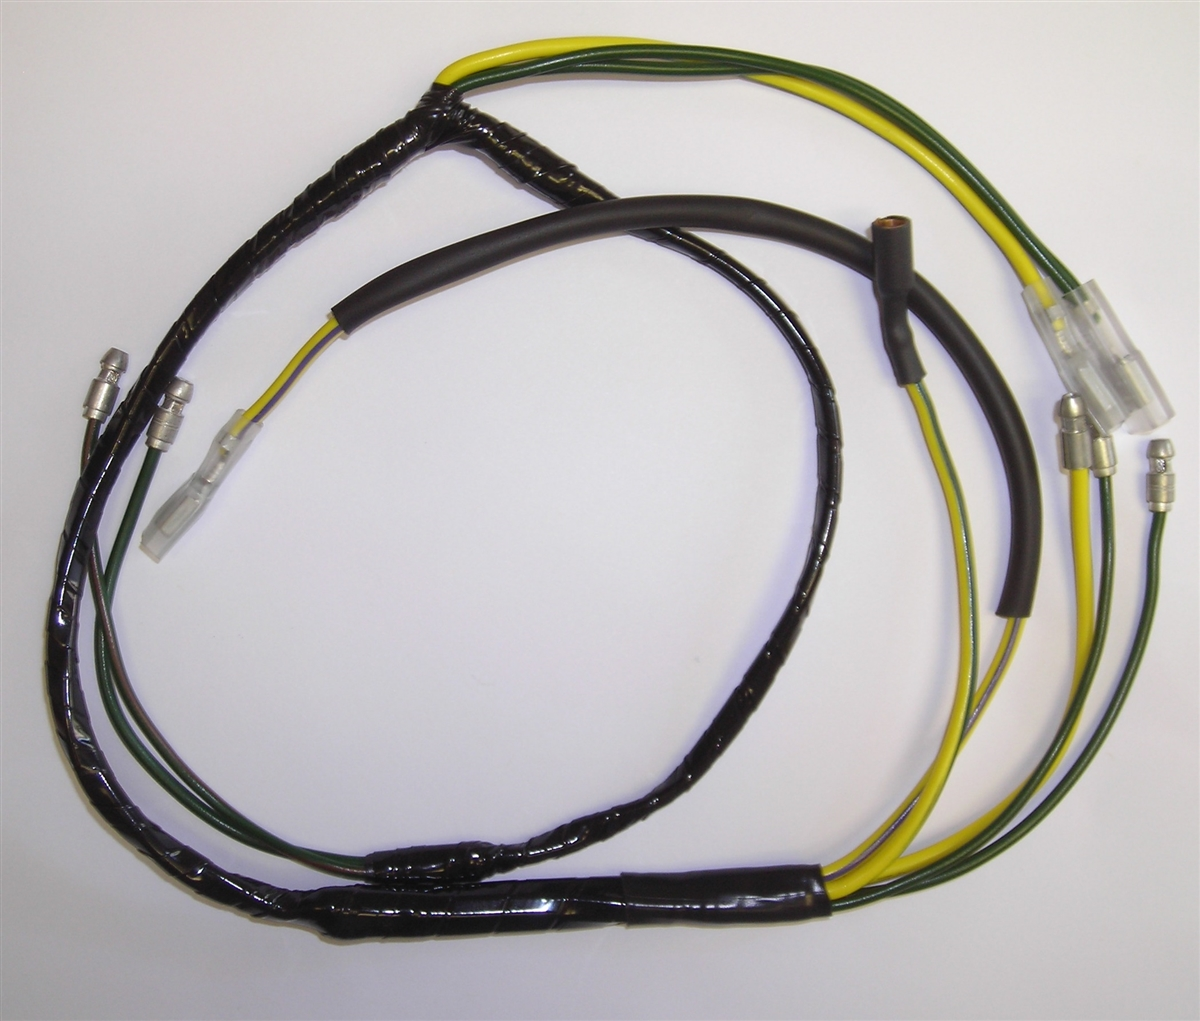 1560 2?1445434201 spitfire j type overdrive wiring harness 73 triumph spitfire 1500 wiring harness at aneh.co